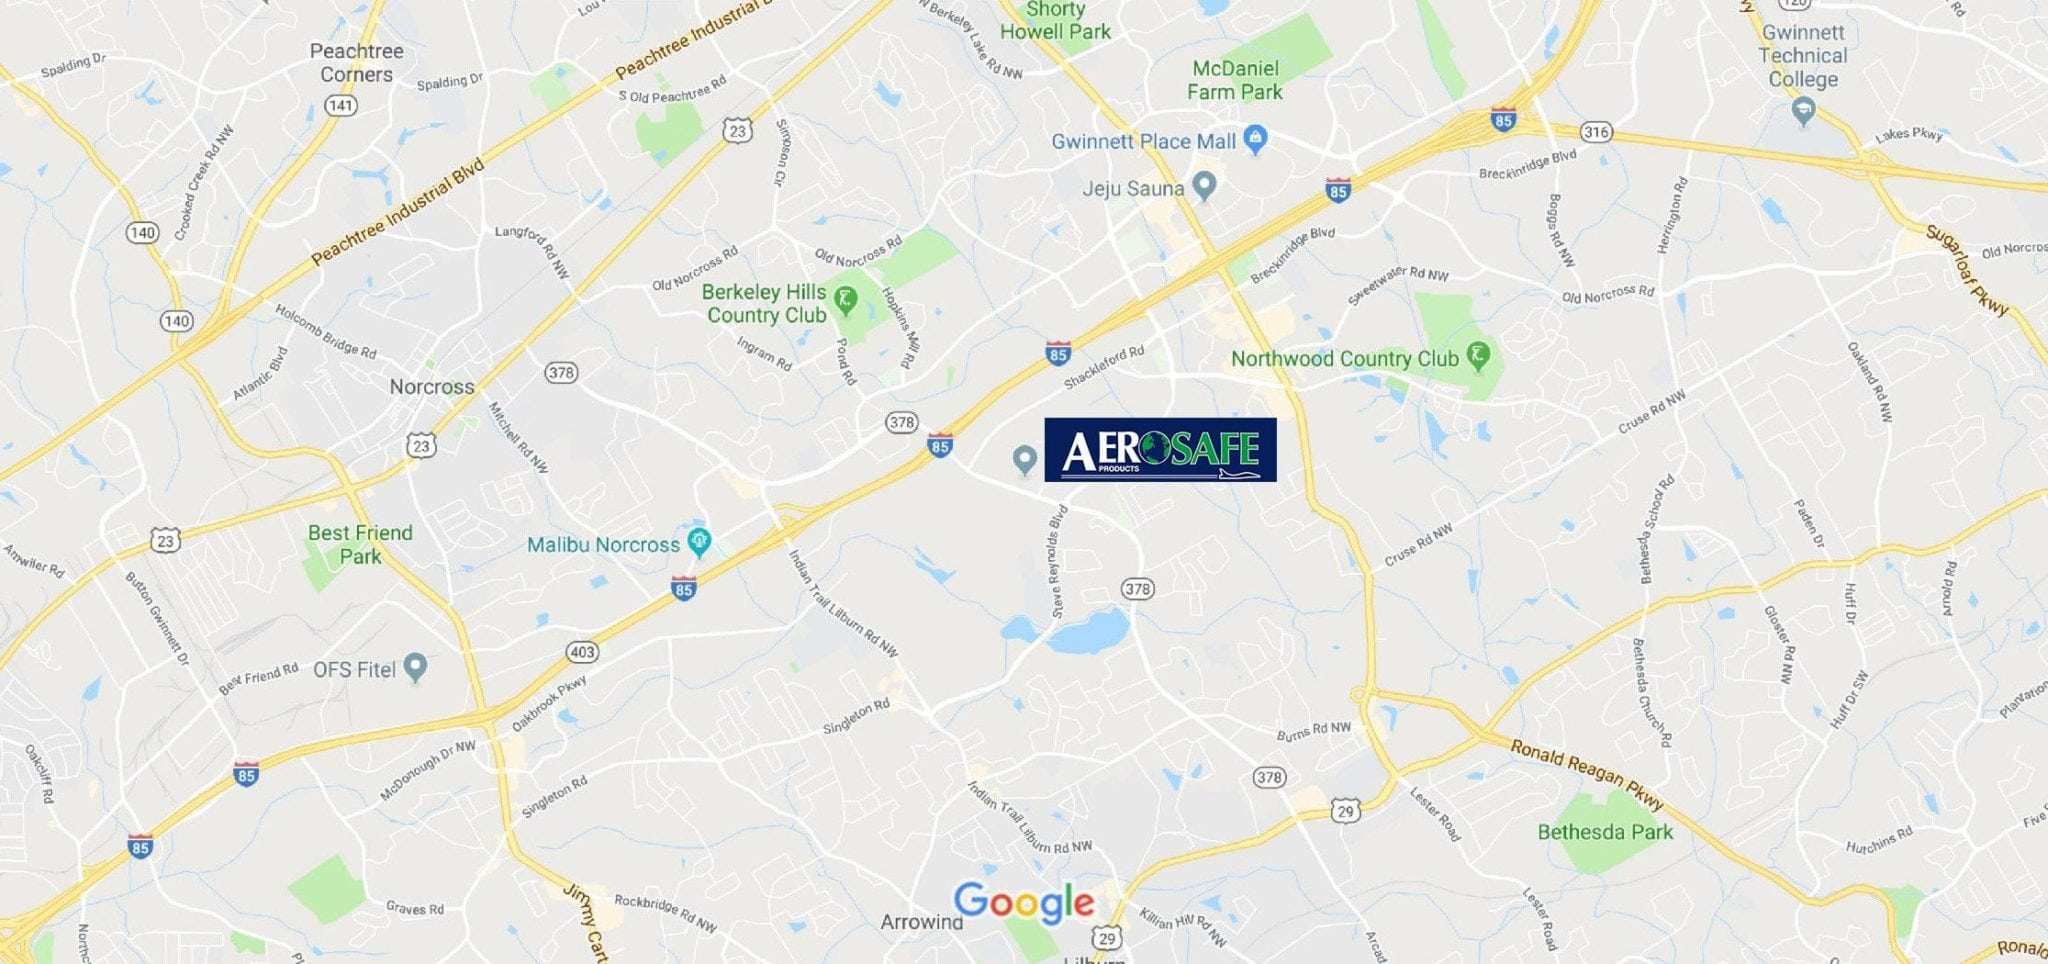 AeroSafe Location